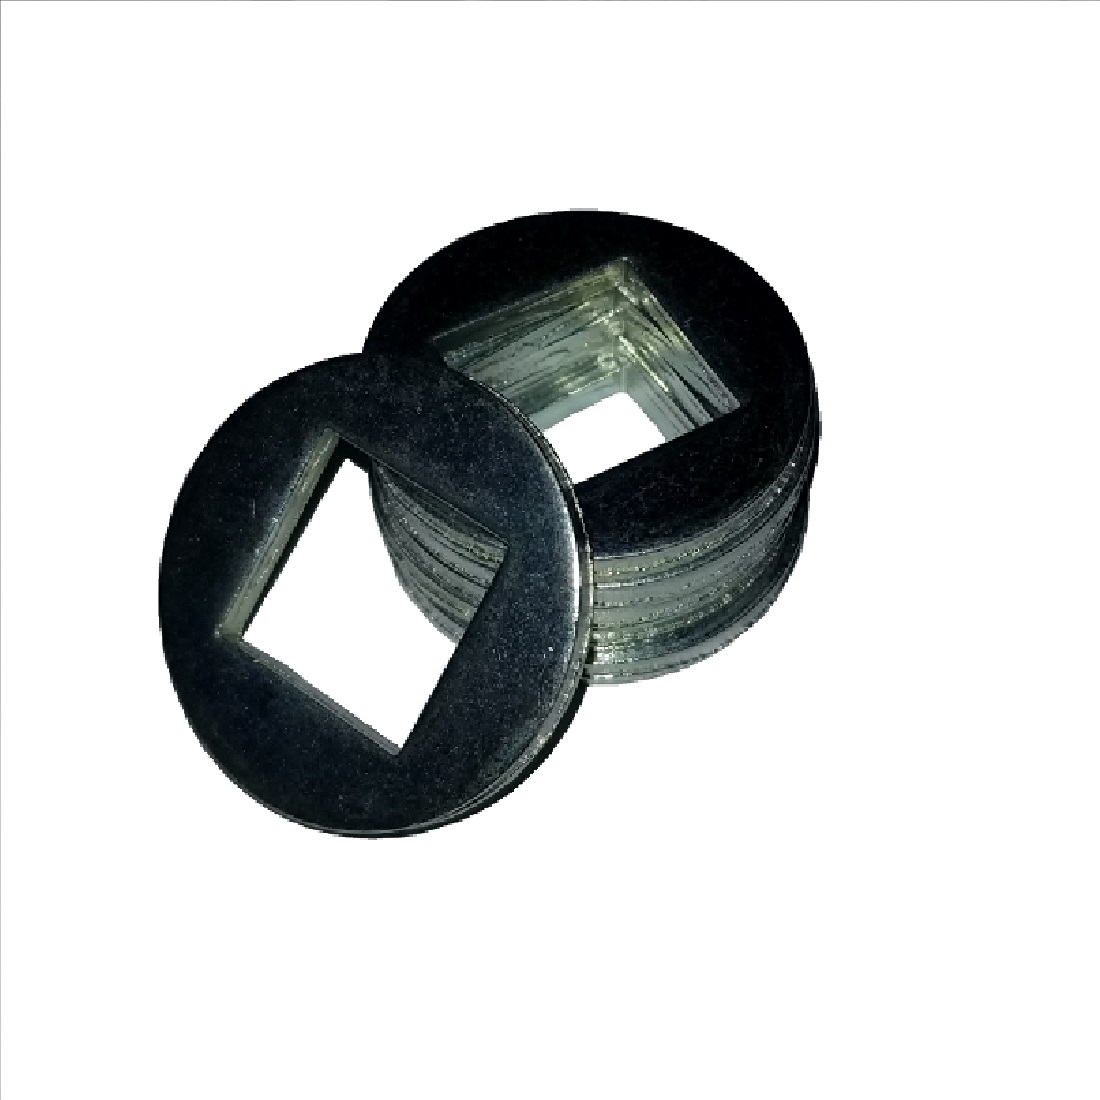 Square ID Washer - 0.530 ID, 1.250 OD, 0.134 Thick, Low Carbon Steel - Soft, Zinc & Clear